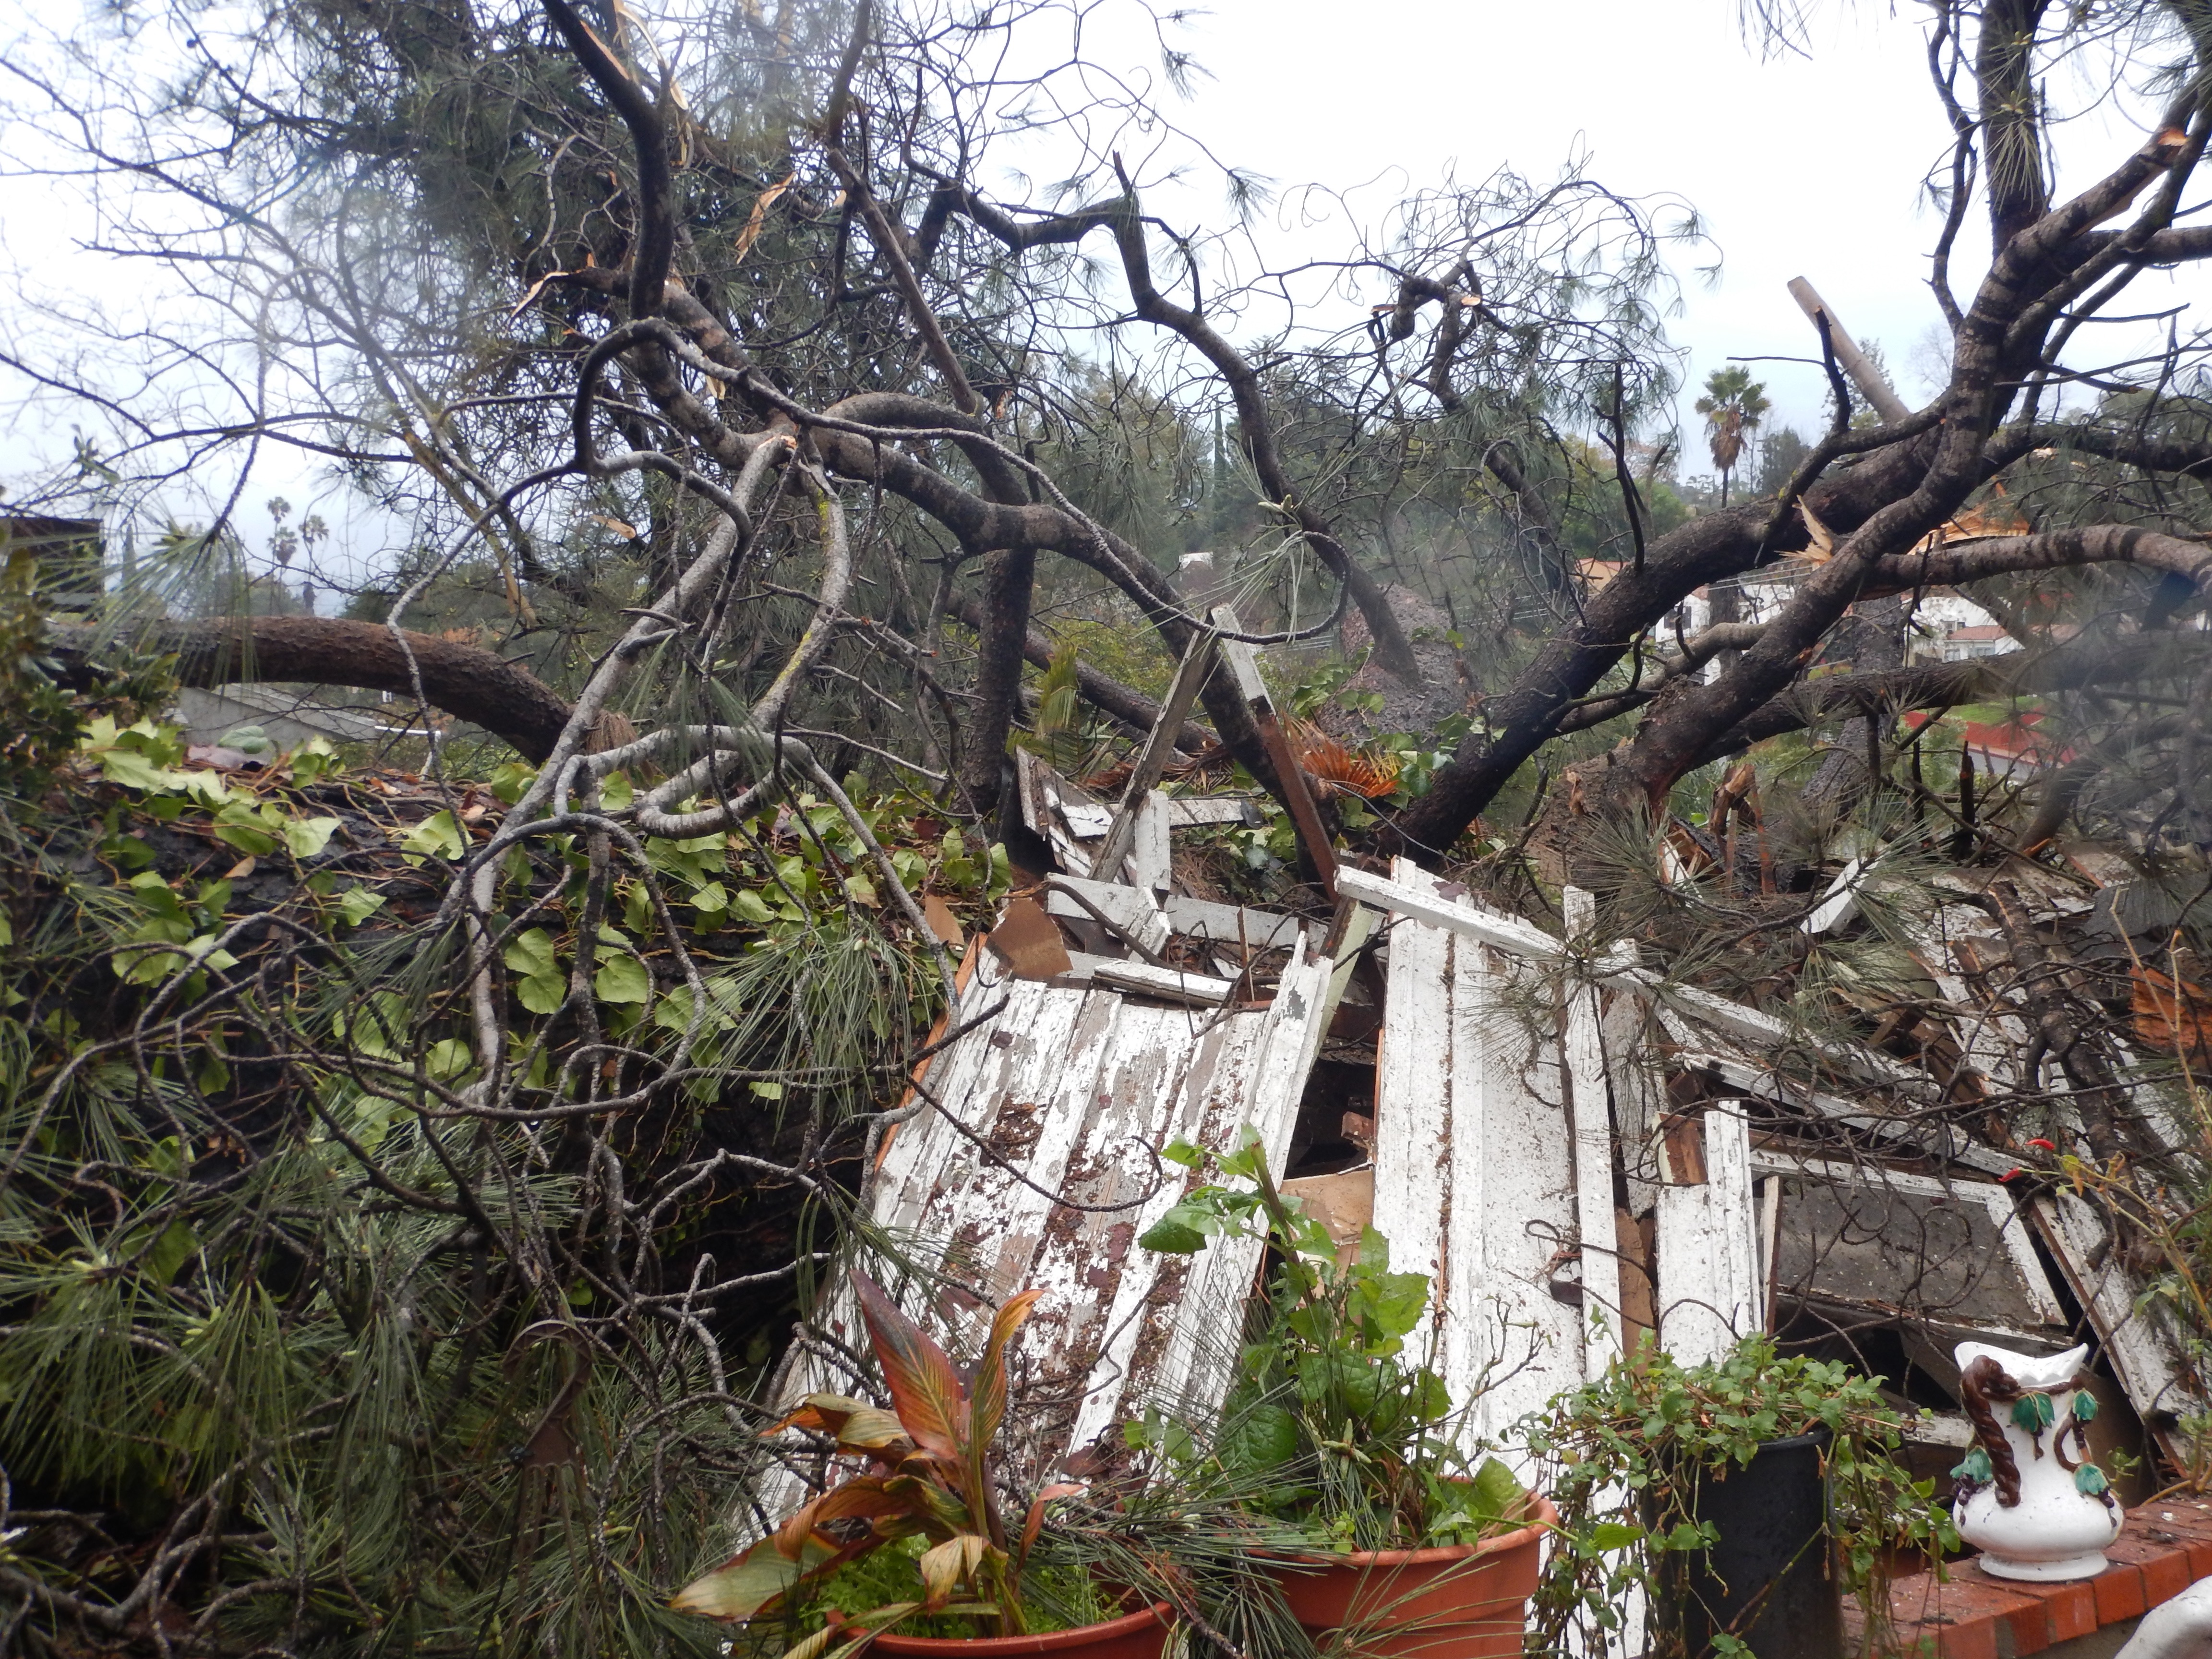 Historic Cottage destroyed by fallen Torrey Pine Tree